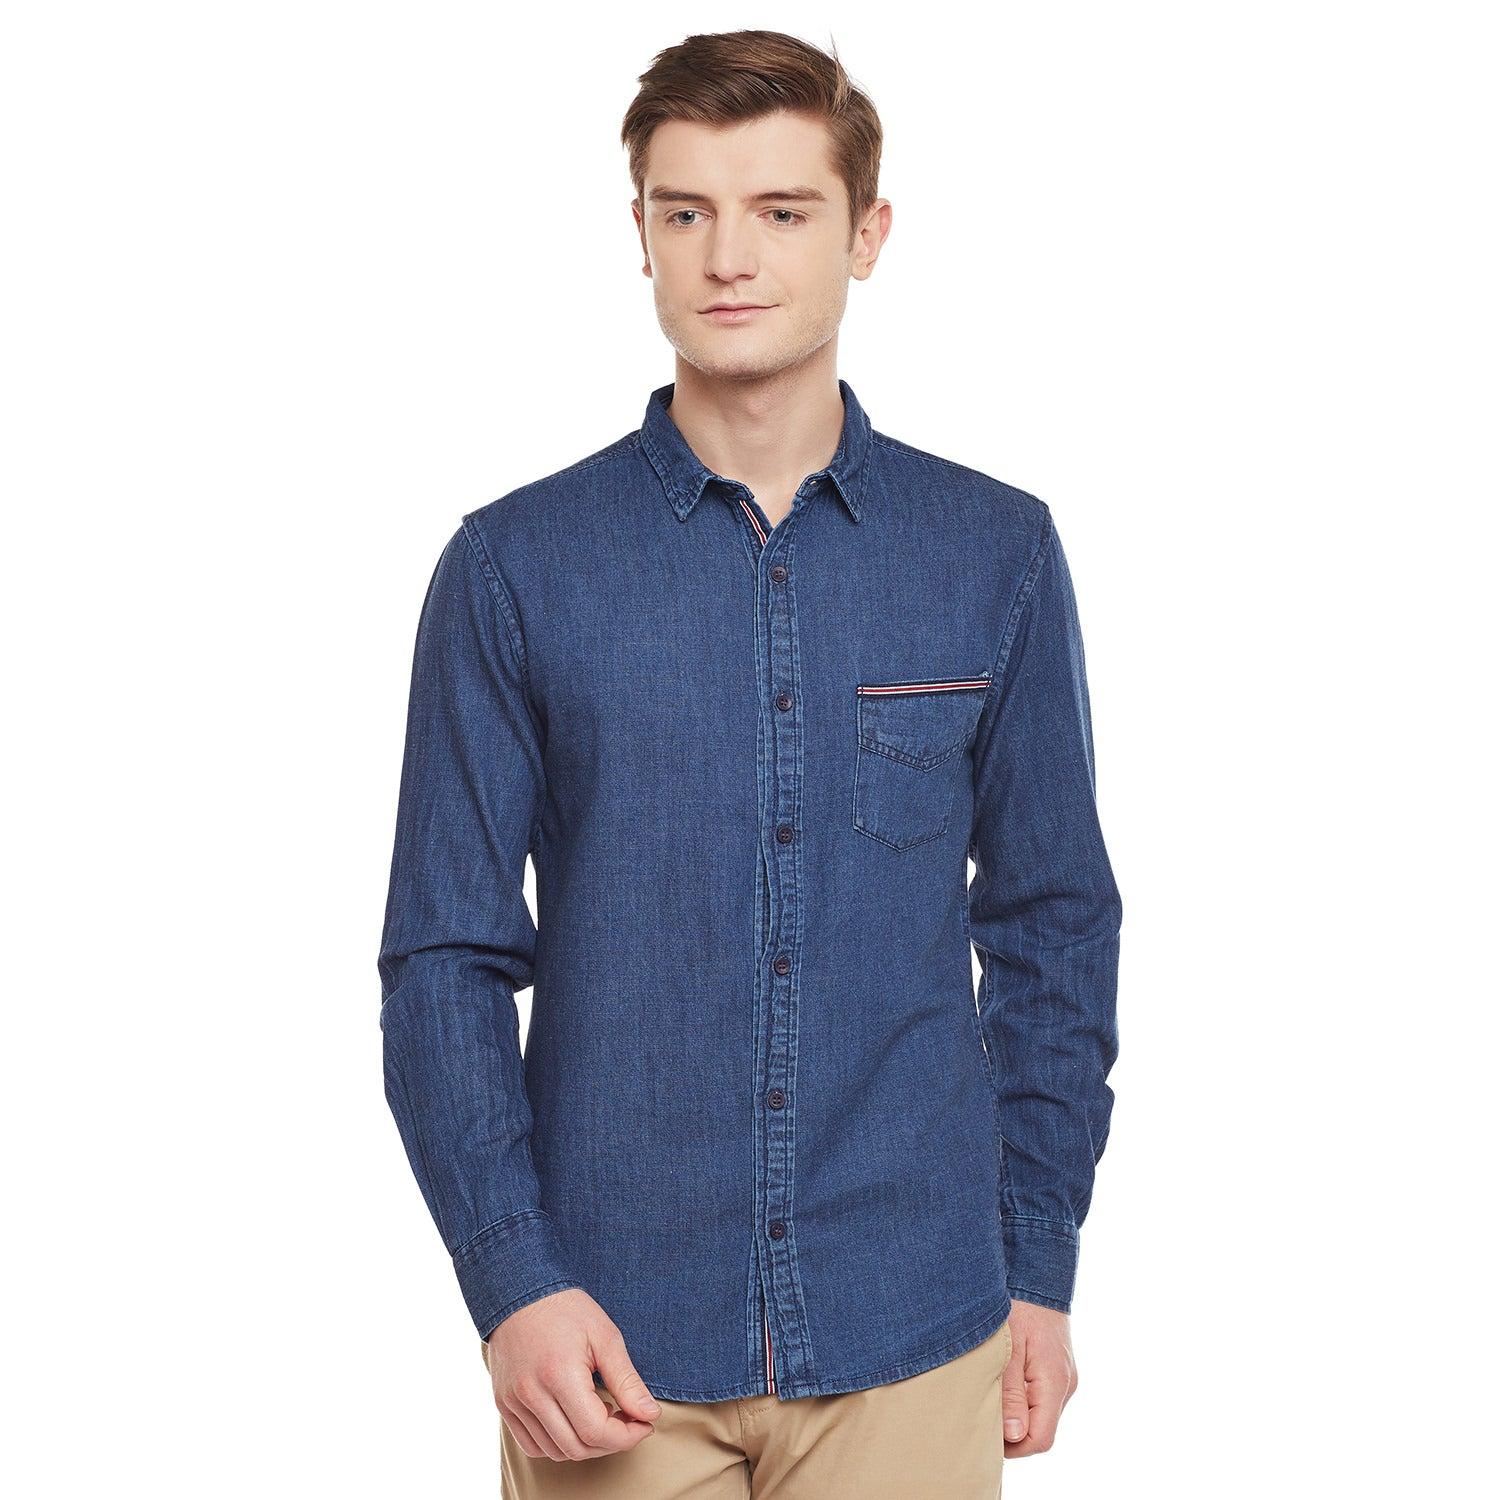 Atorse Mens Classic Pocket Shirt With Tape Detail